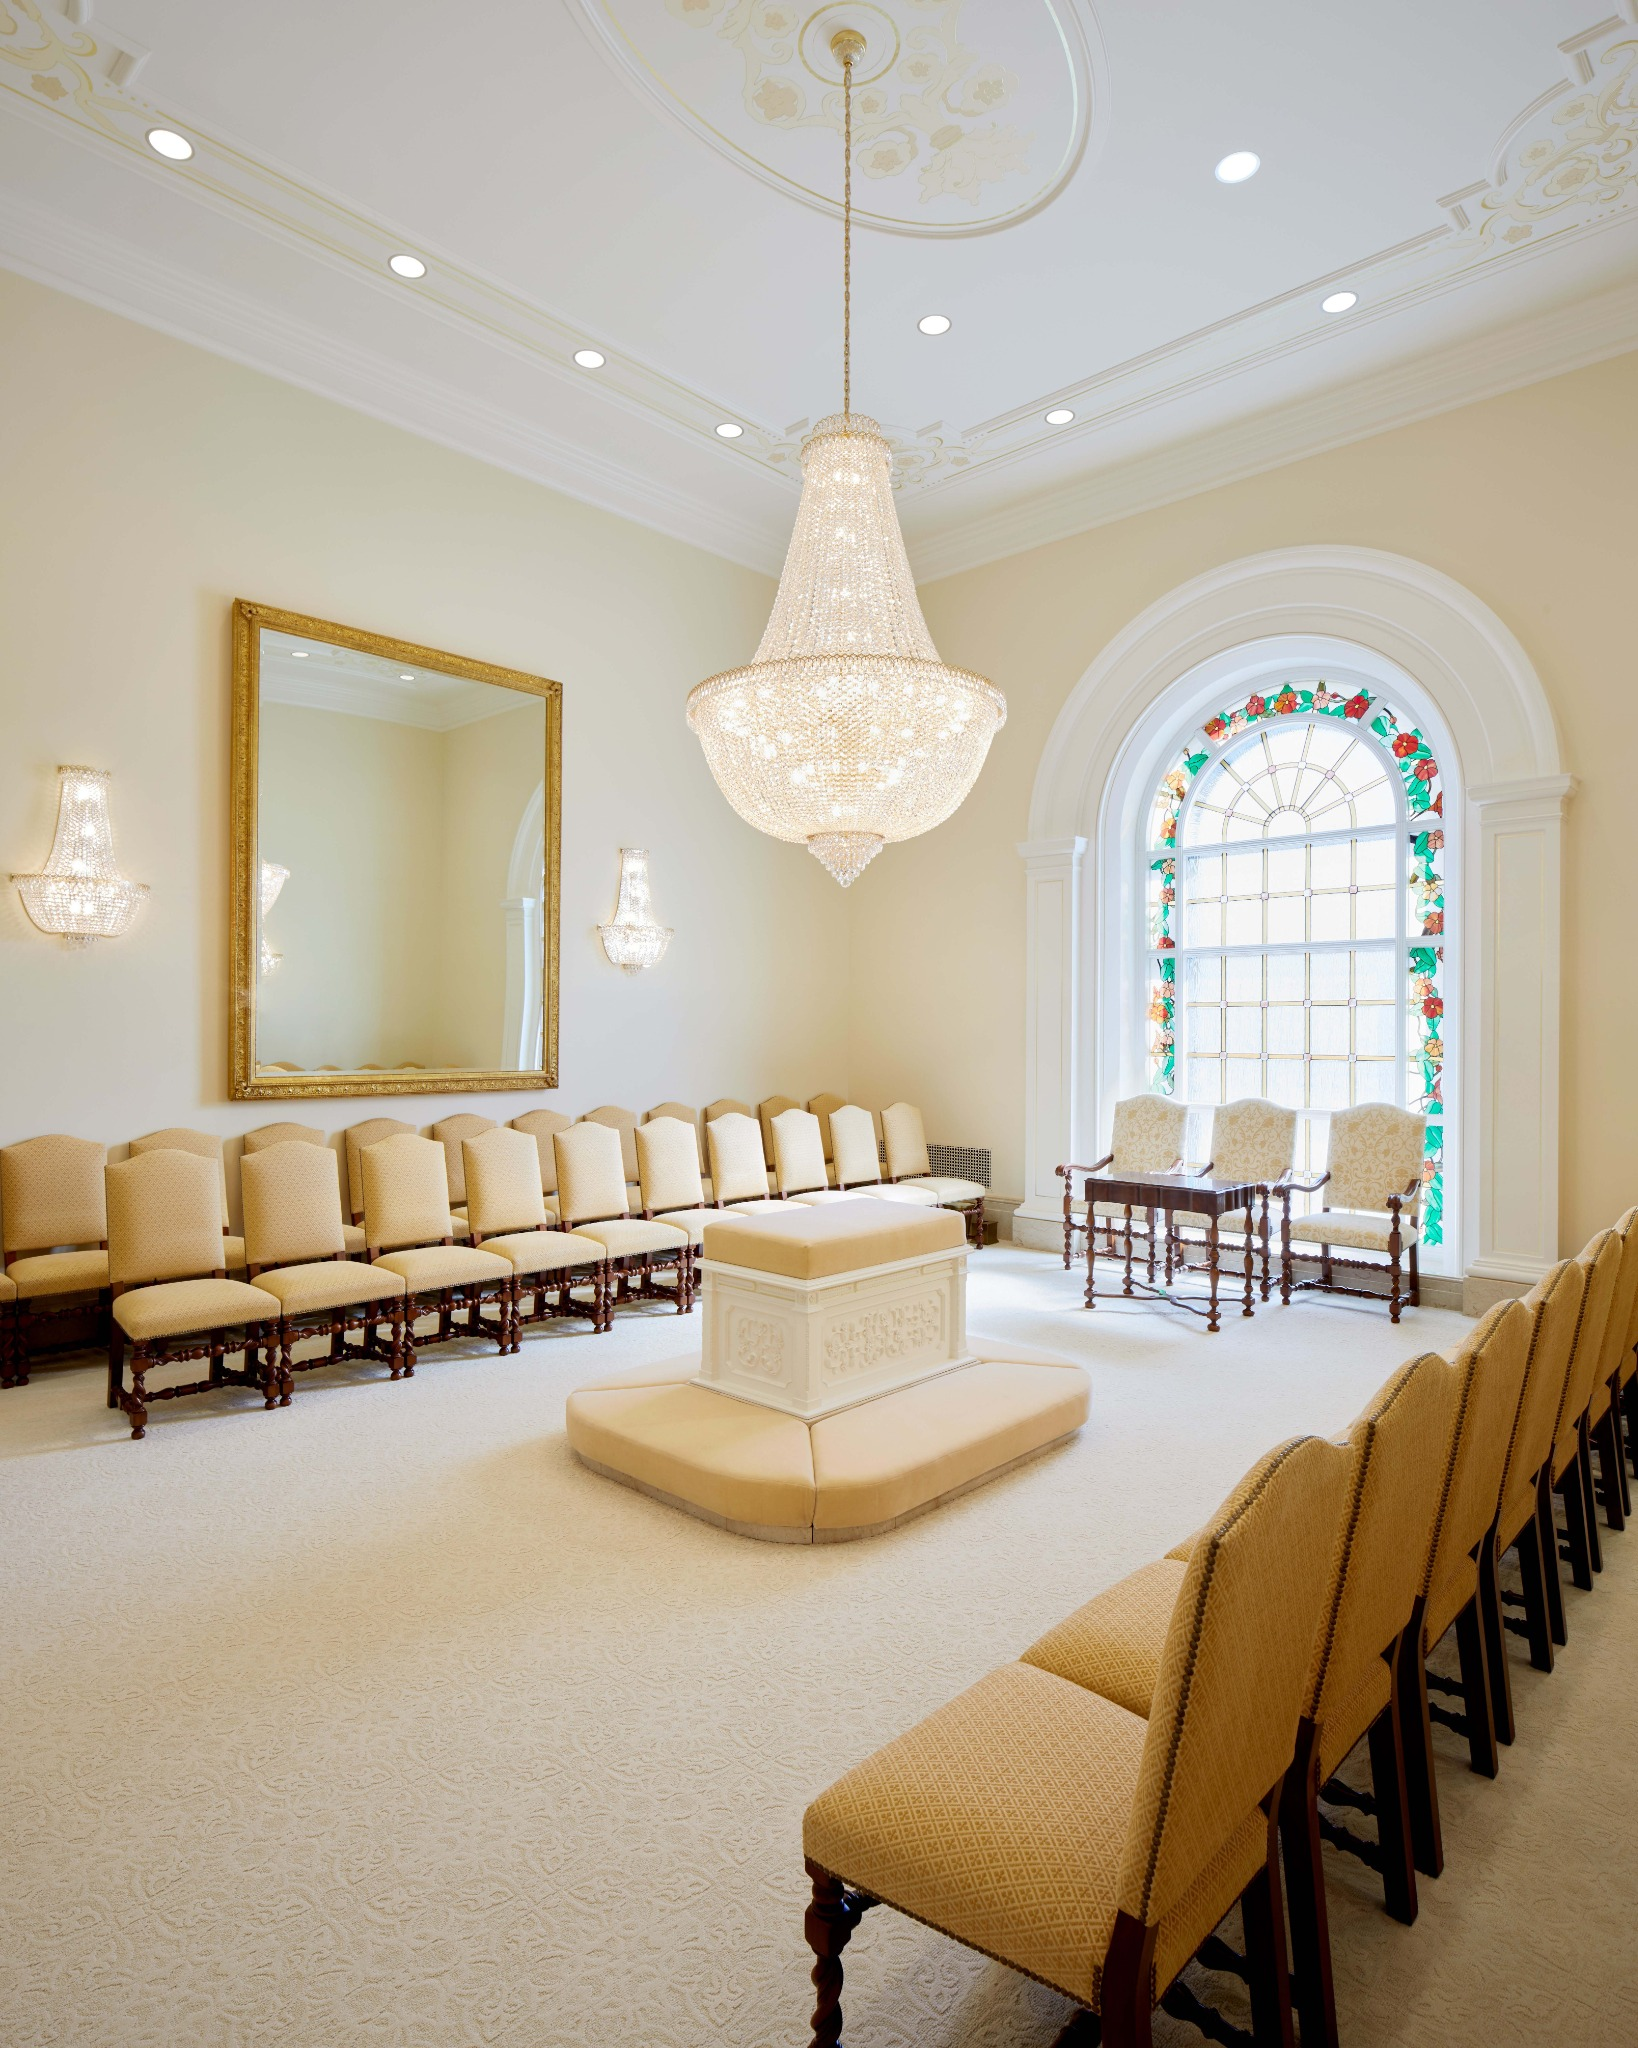 A sealing room in the Arequipa Peru Temple.